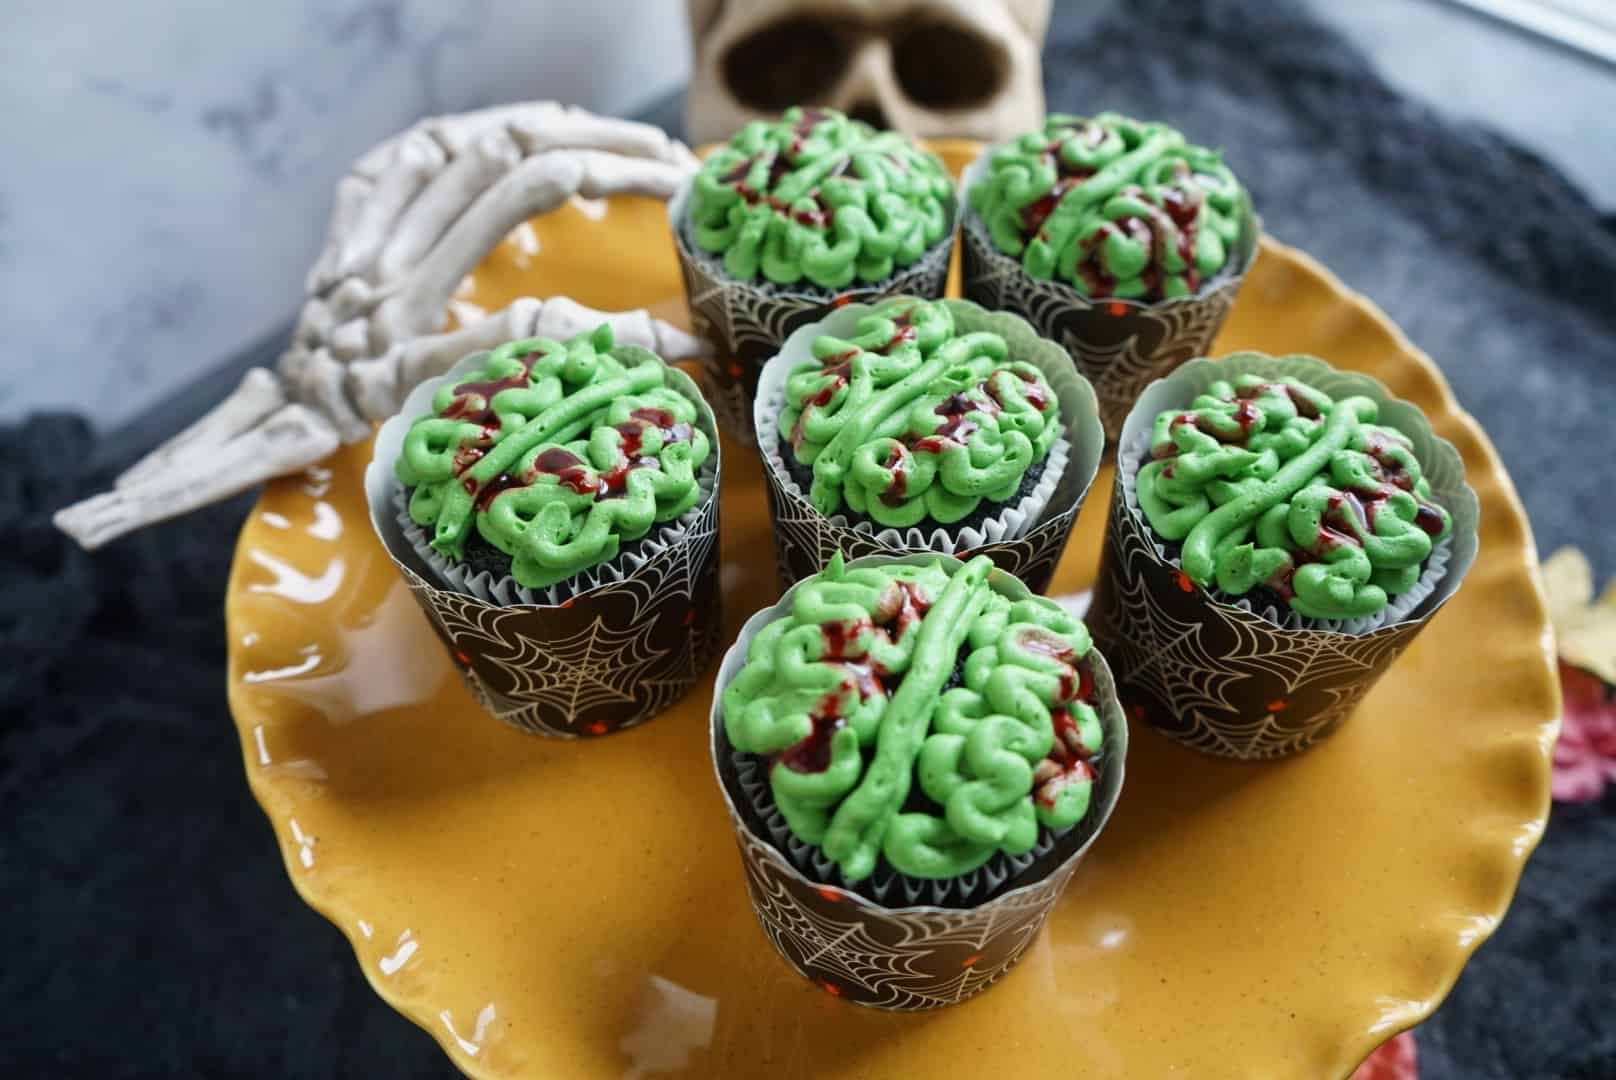 a top down view of six cupcakes with green icing in the pattern of brains. the cupcakes are sitting on a yellow plate